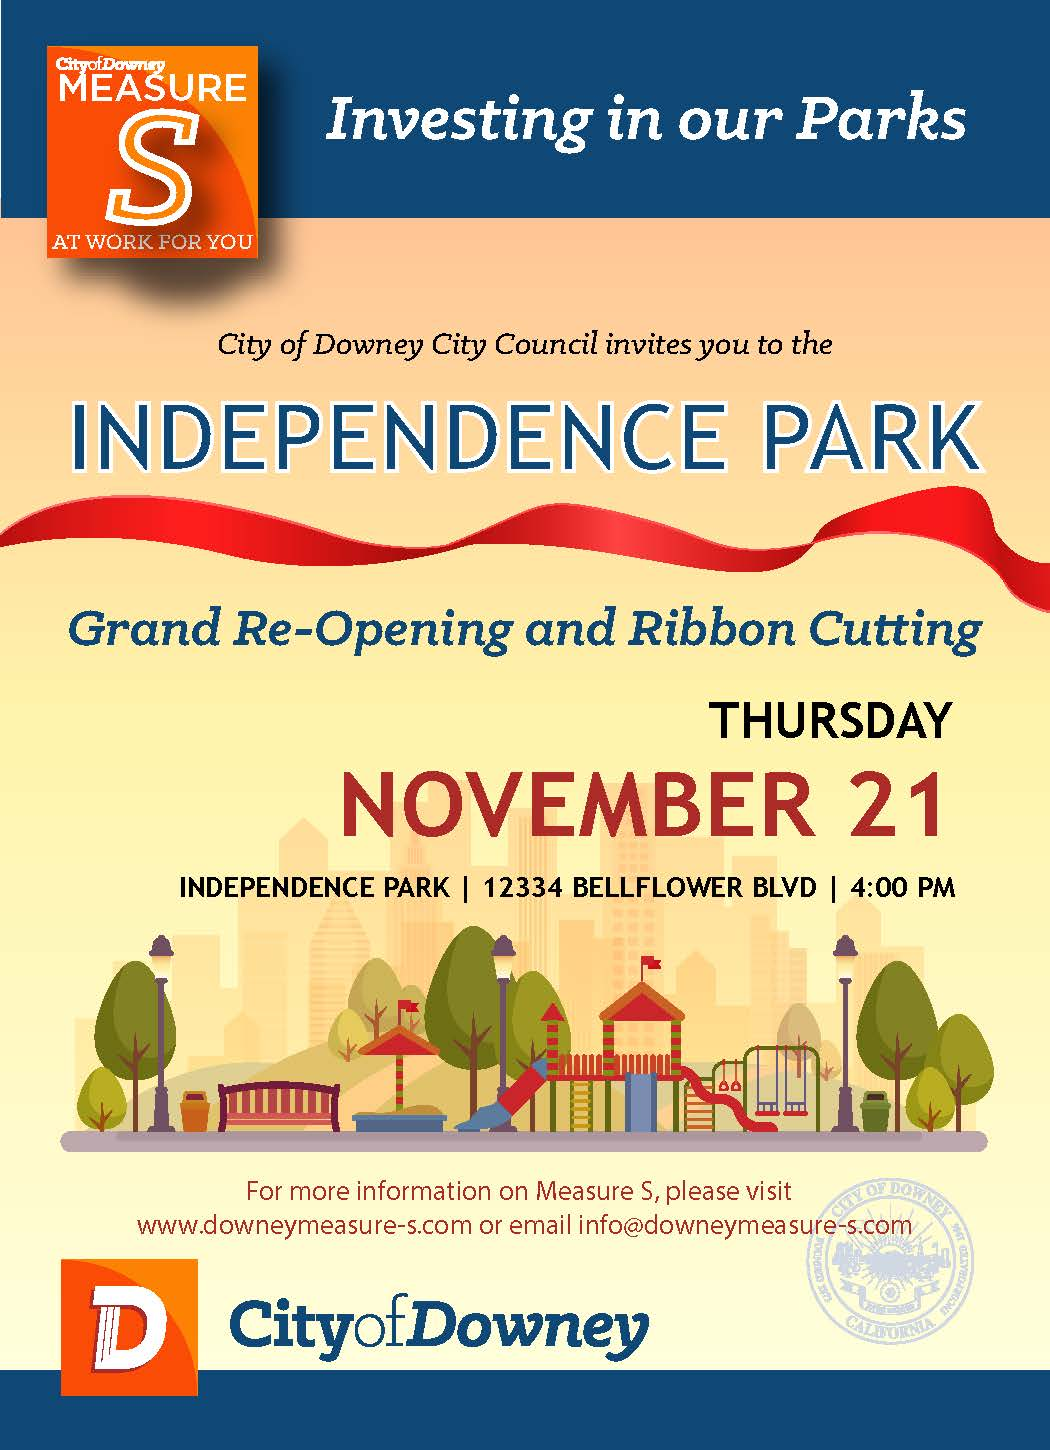 Independence Park Grand Re-Opening and Ribbon Cutting Ceremony